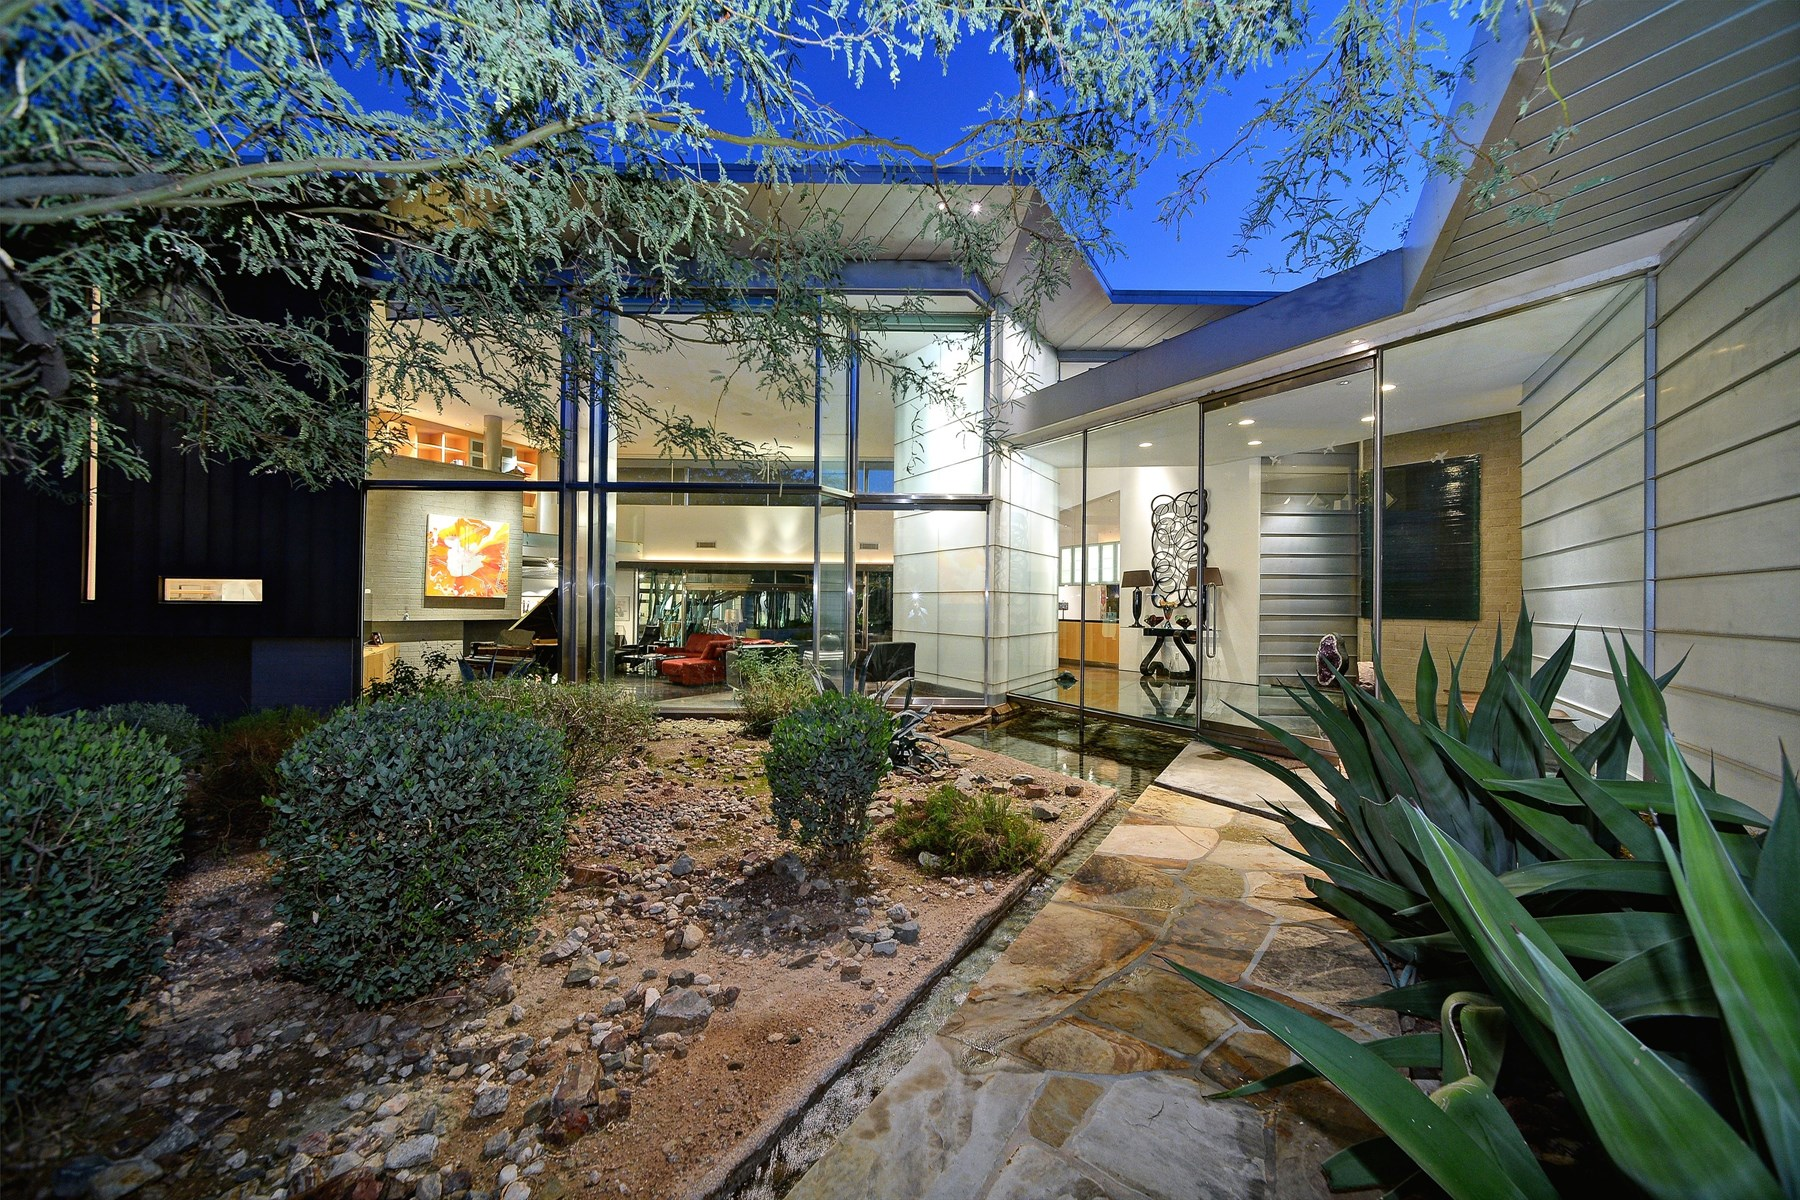 단독 가정 주택 용 매매 에 Stunning Modernist Masterpiece On A Spectacular Paradise Valley View Lot 5901 E Joshua Tree Lane Paradise Valley, 아리조나 85253 미국